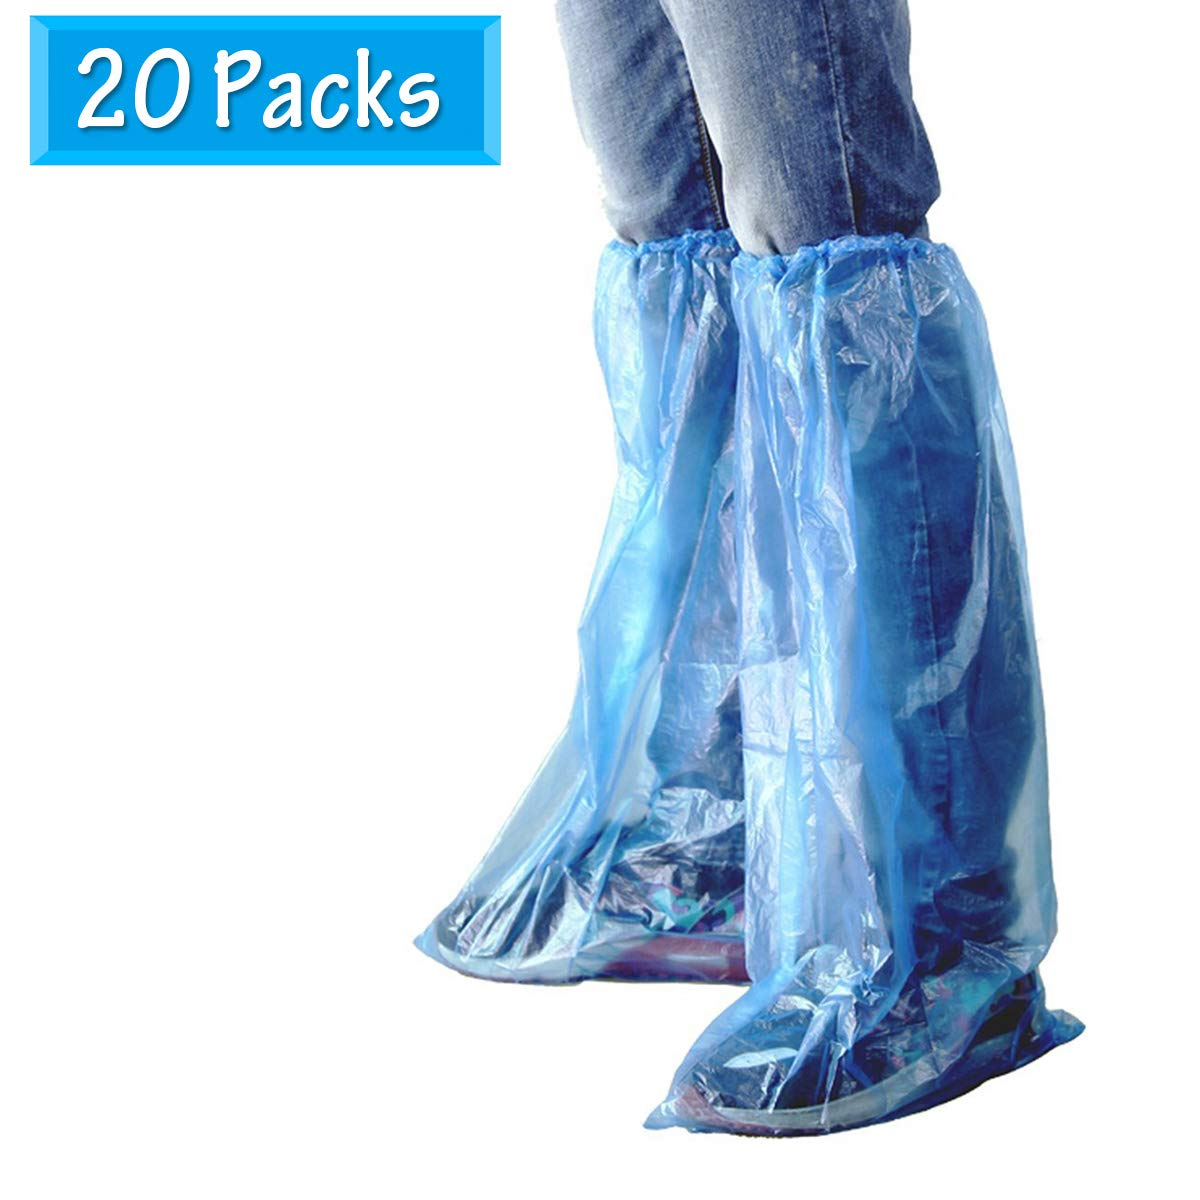 HUABEI Disposable Shoe Covers 40 Pieces (20 Pairs) Blue Rain Shoes and Boots Cover Plastic Long Shoe Cover Clear Waterproof Anti-Slip Overshoe for Women Men Water Boots Cover (40Pack(20Pairs))